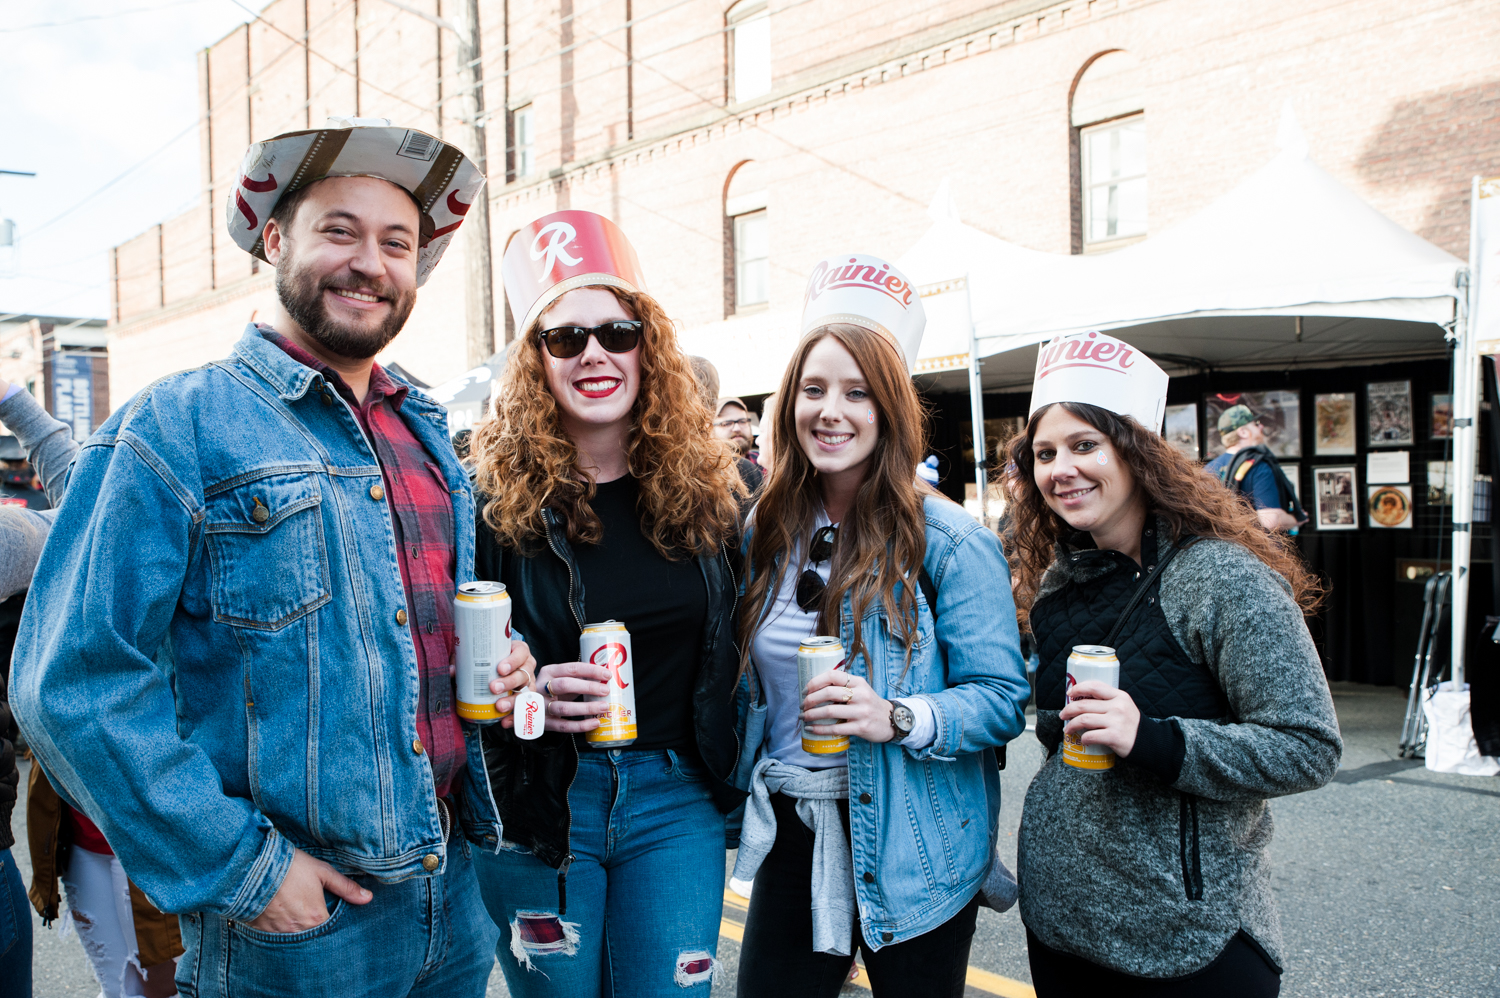 Beer enthusiasts were treated to a free event in Georgetown to celebrate 'R Day', an annual celebration of Rainier Beer's rich heritage. The day is filled with community, music and awesome merchandise. Patrons donned clothes, hats, jackets, emblazoned with the iconic 'R', all the while sipping delicious local brews. (Image: Elizabeth Crook / Seattle Refined)